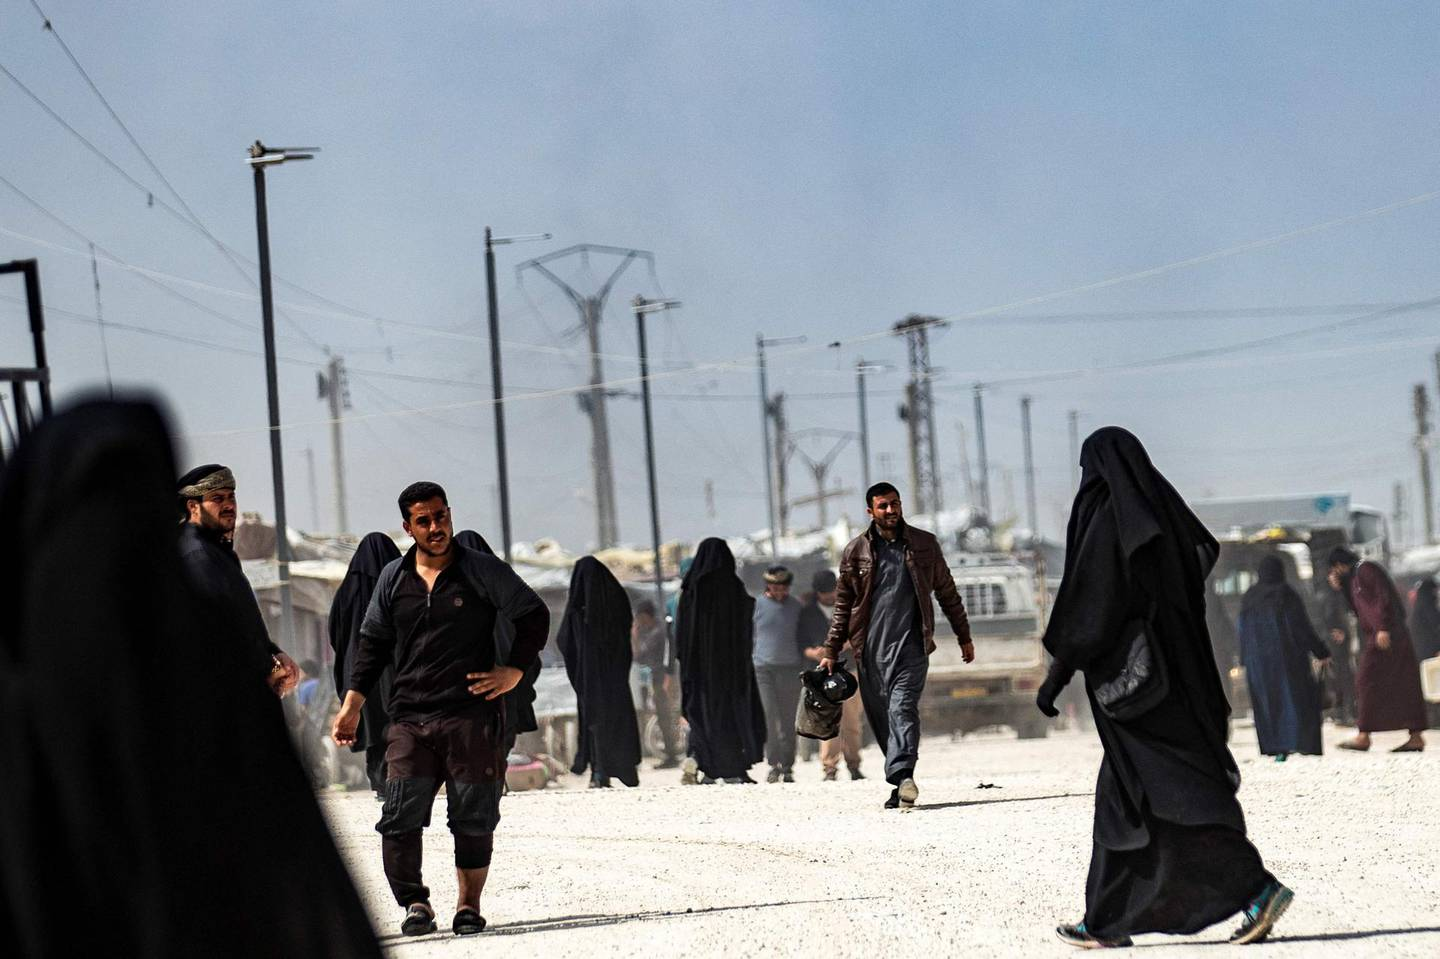 (FILES) In this file photo taken on March 3, 2021, people walk at the Kurdish-run al-Hol camp which holds suspected relatives of Islamic State (IS) group fighters, in Hasakeh governorate of northeastern Syria. Kurdish authorities launched a security sweep in the camp where they arrested dozens today, a war monitor and Kurdish officials said.  / AFP / Delil SOULEIMAN